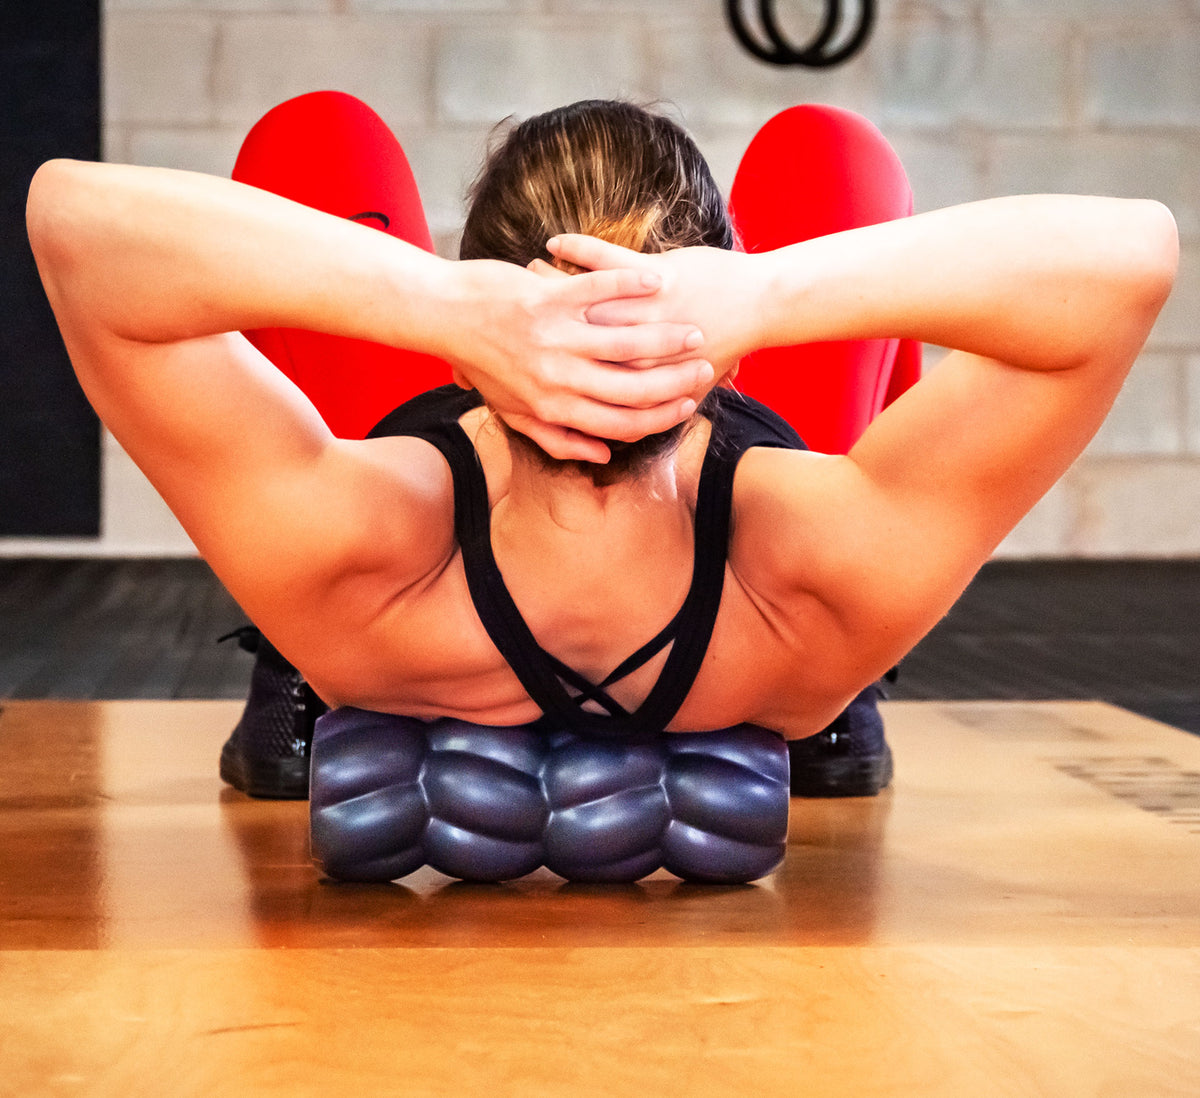 Athletic woman using the Barbell Roller to roll her upper back